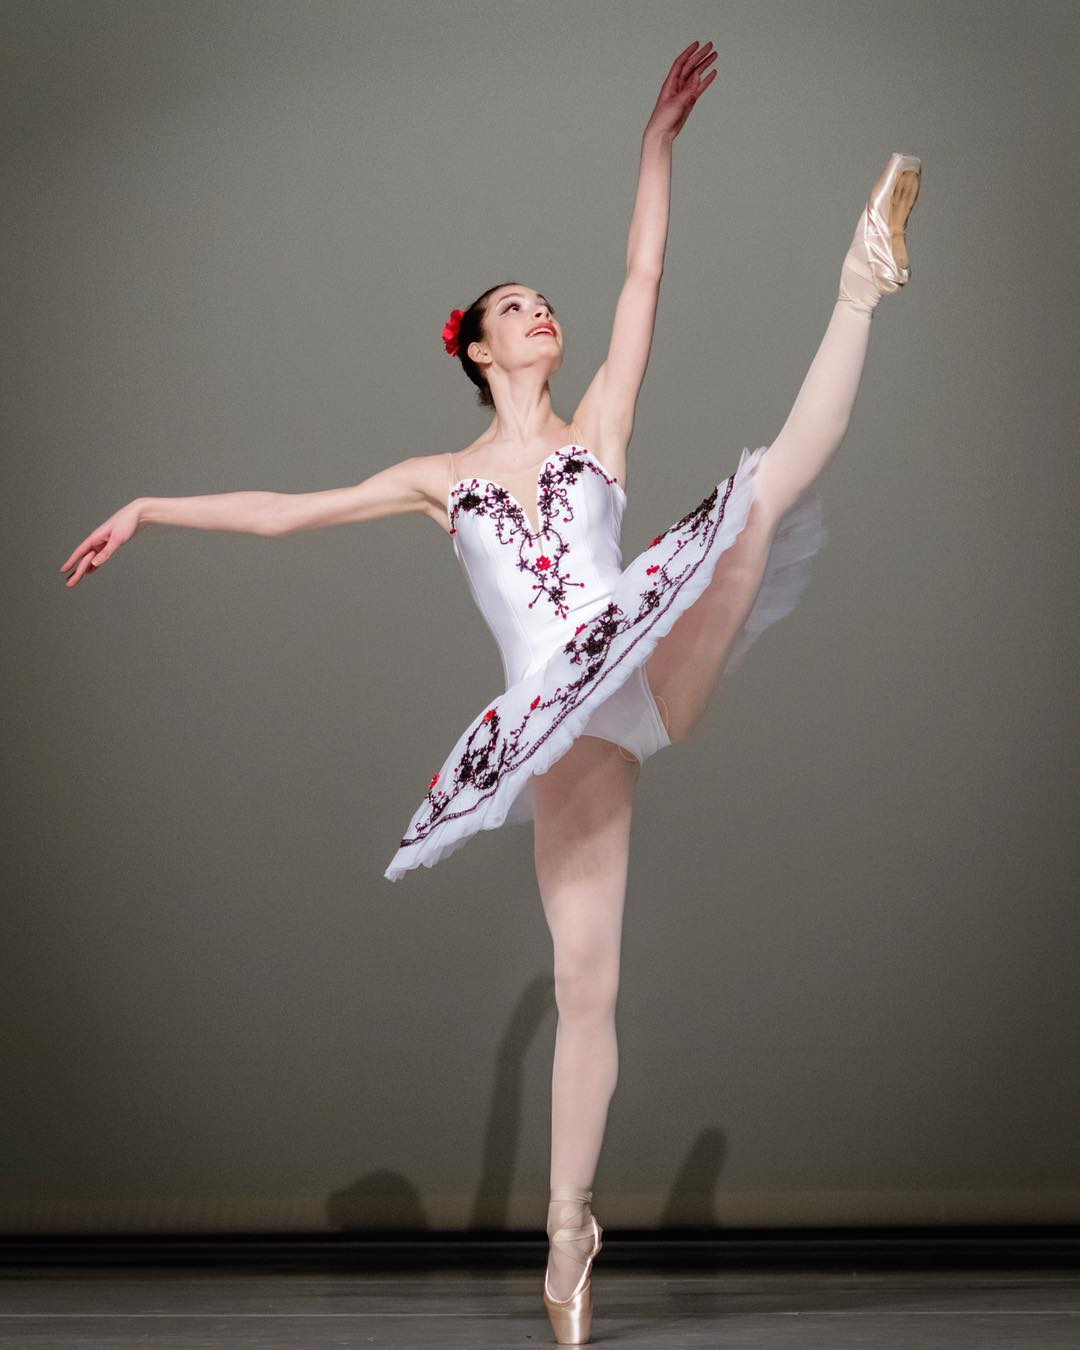 The Journey Indianapolis >> Q&A With American Ballerina Margaret Rhea | A Bender Fan